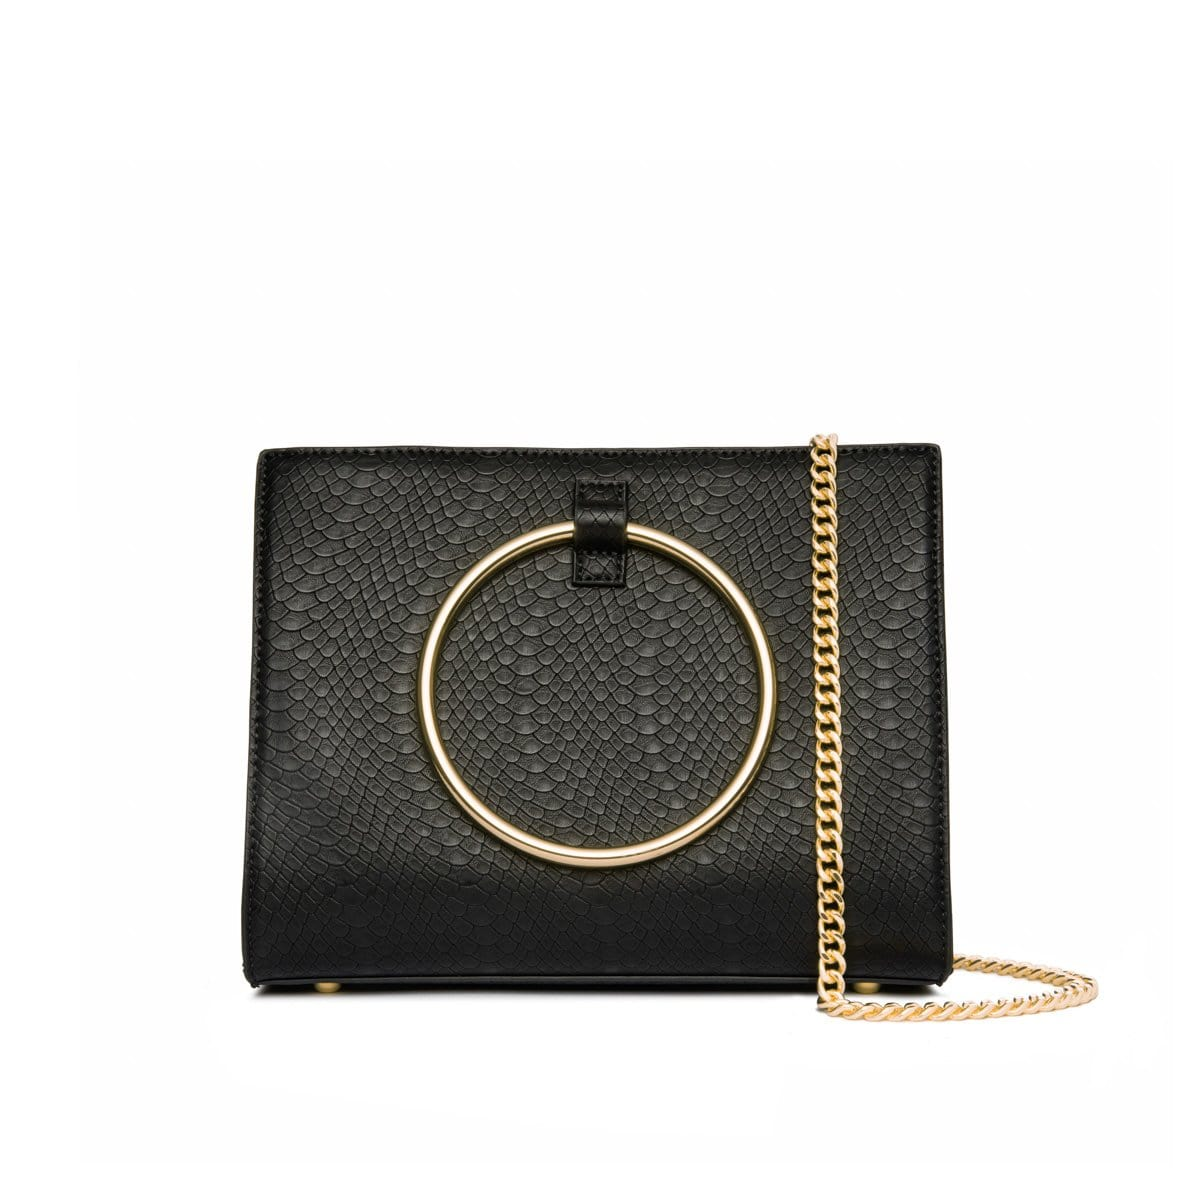 Jet Black Moda Handbag Yellow Gold